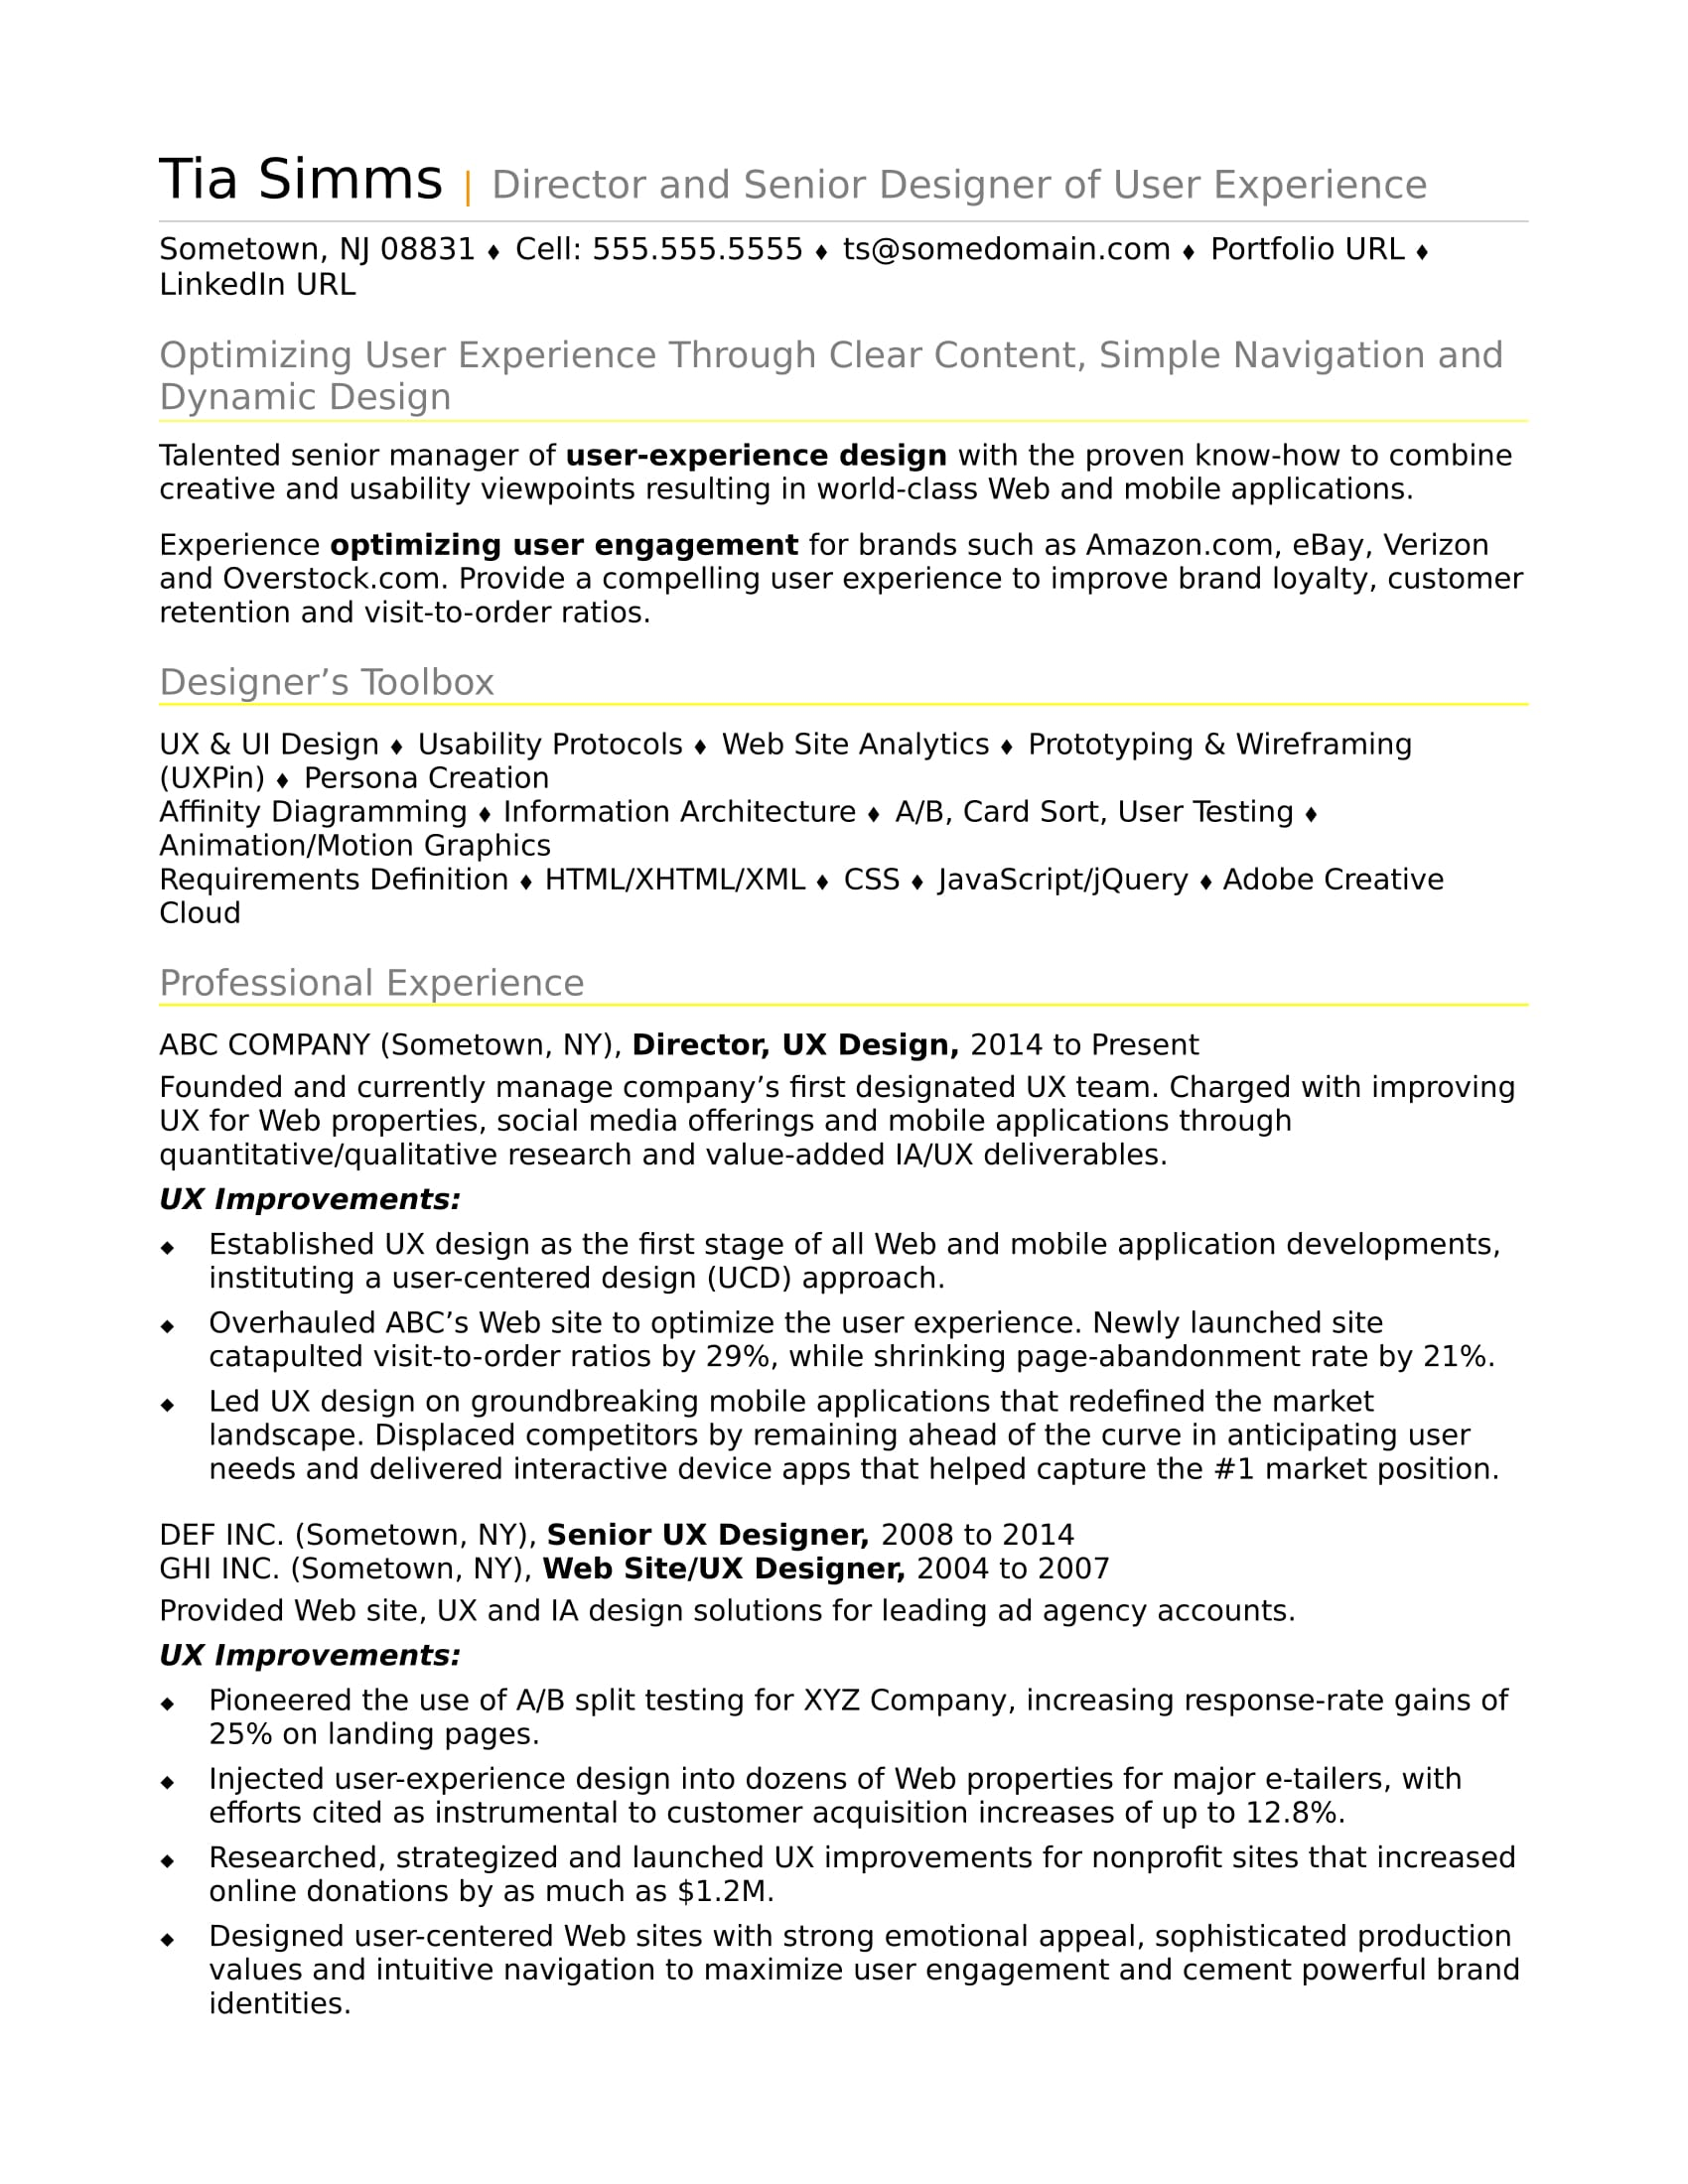 sample resume for an experienced ux designer